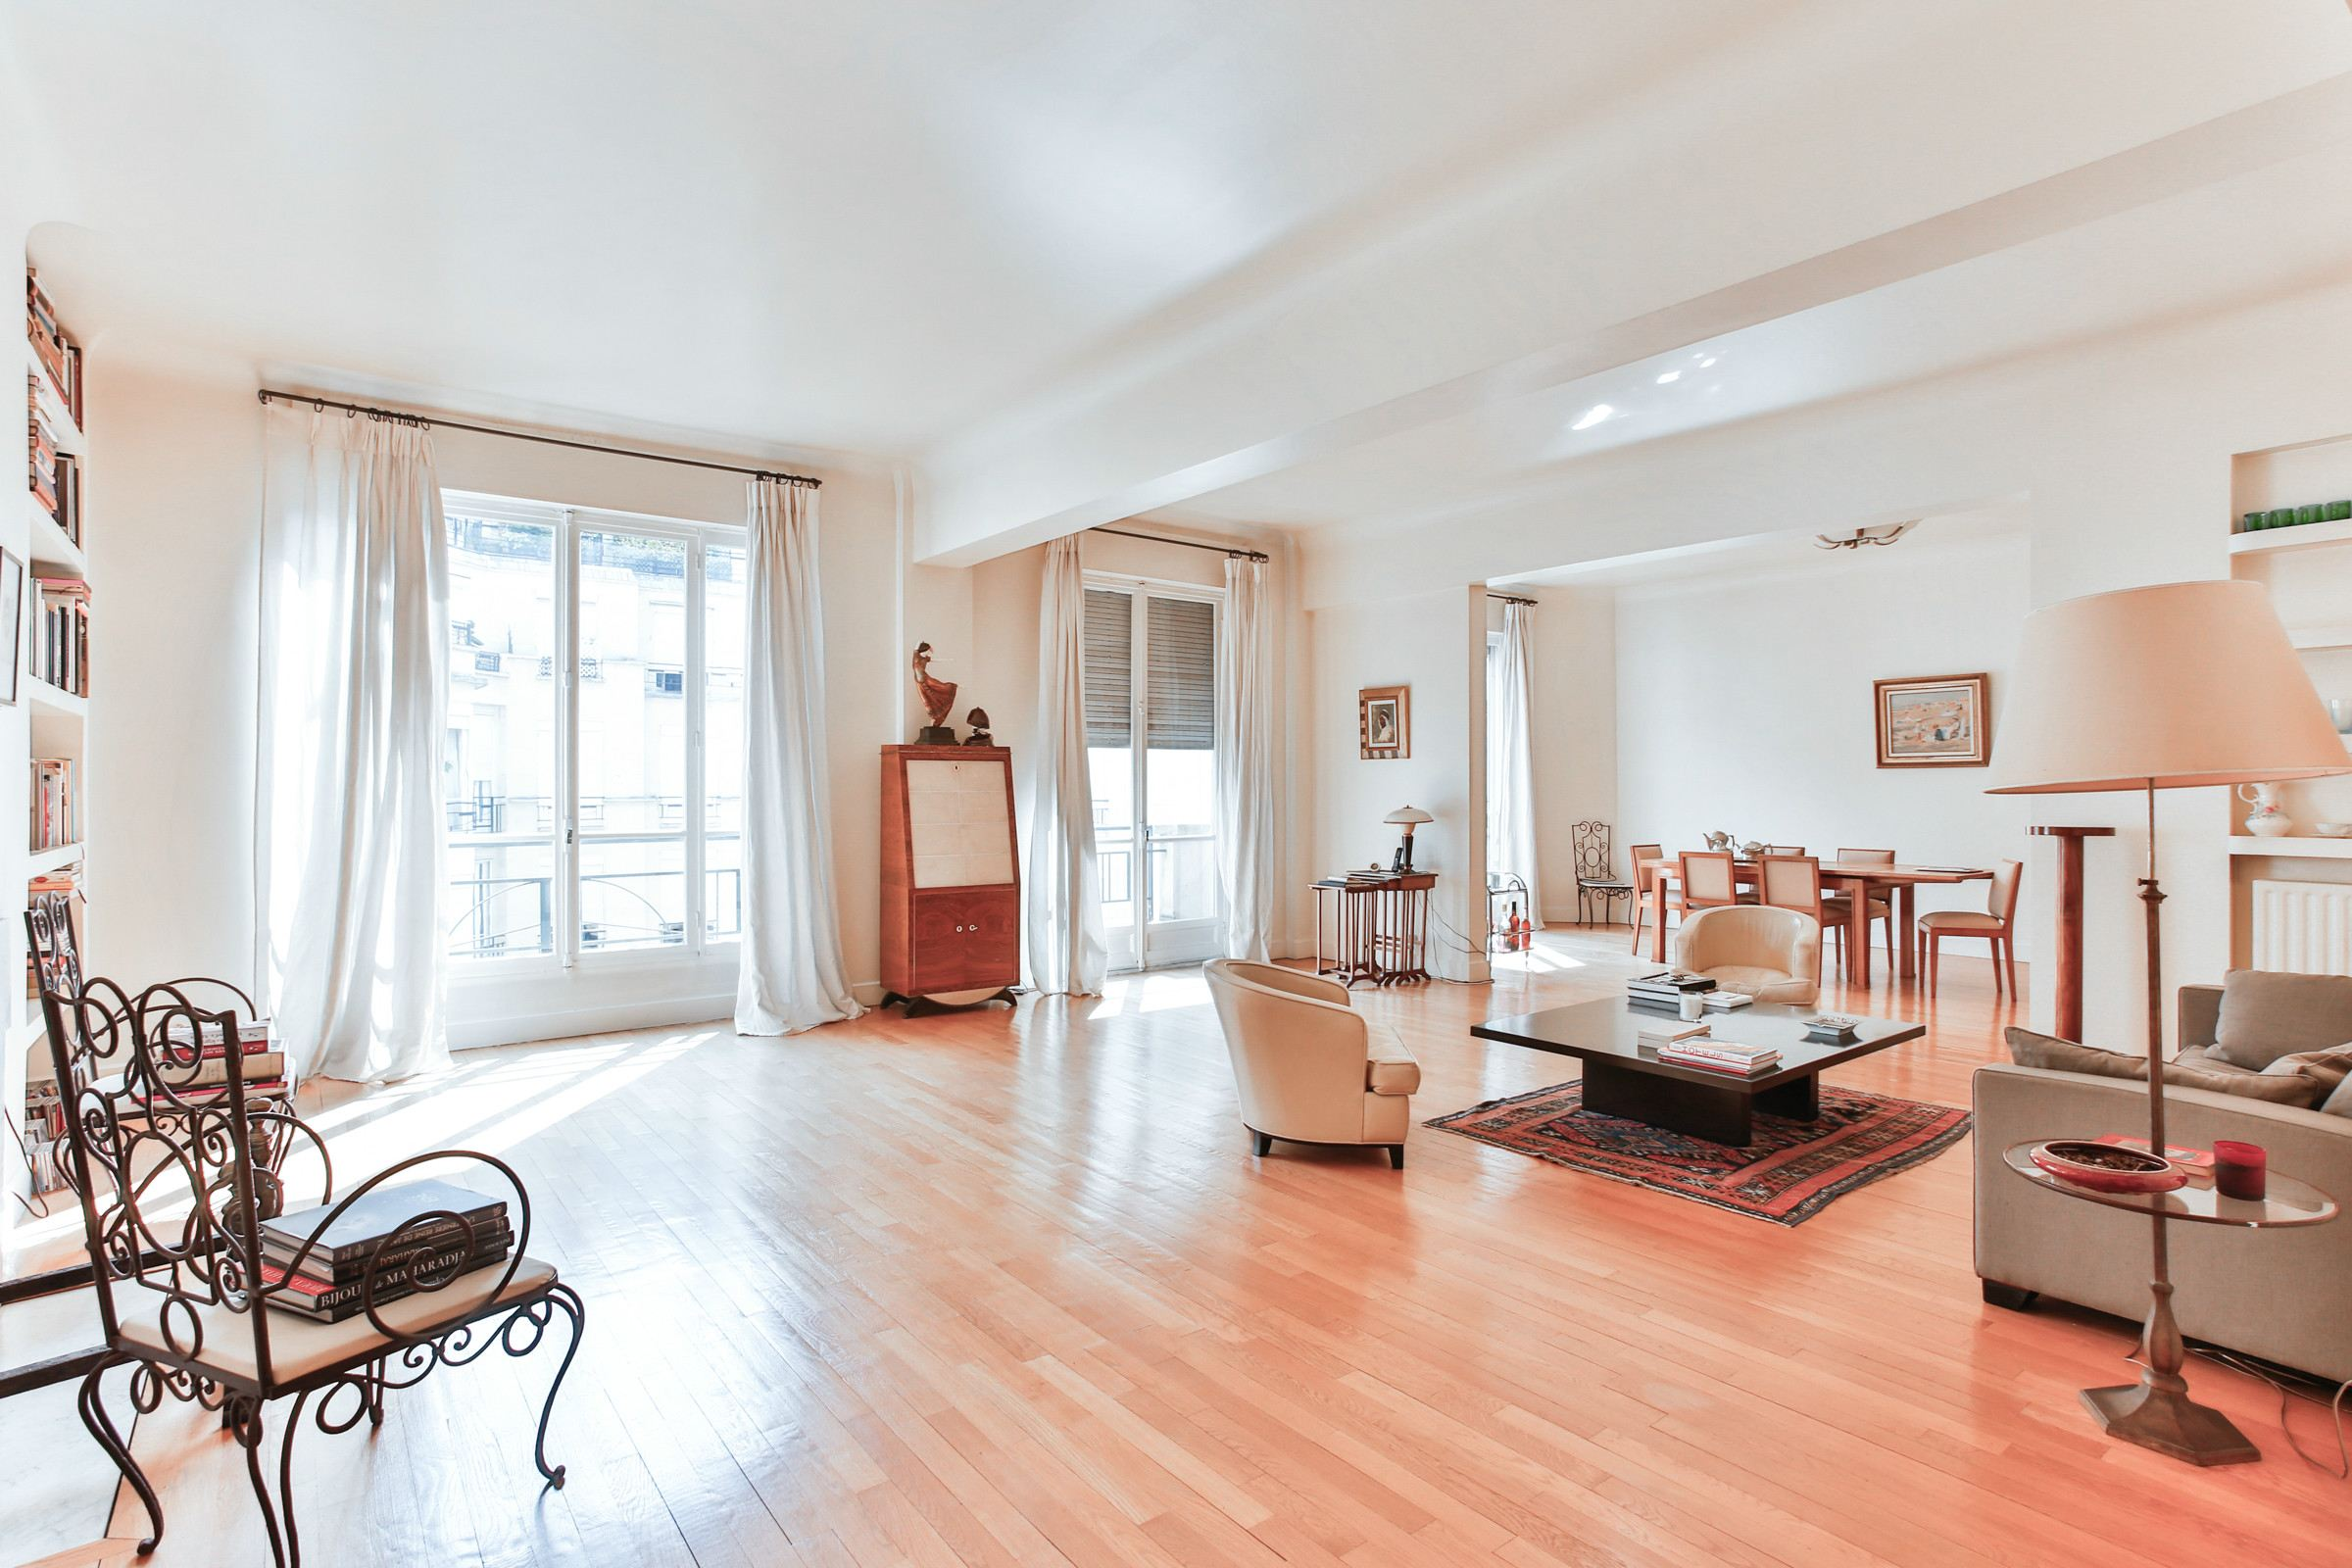 Property For Sale at Paris 16 - Pompe. Apartment. Sunny, to freshen up